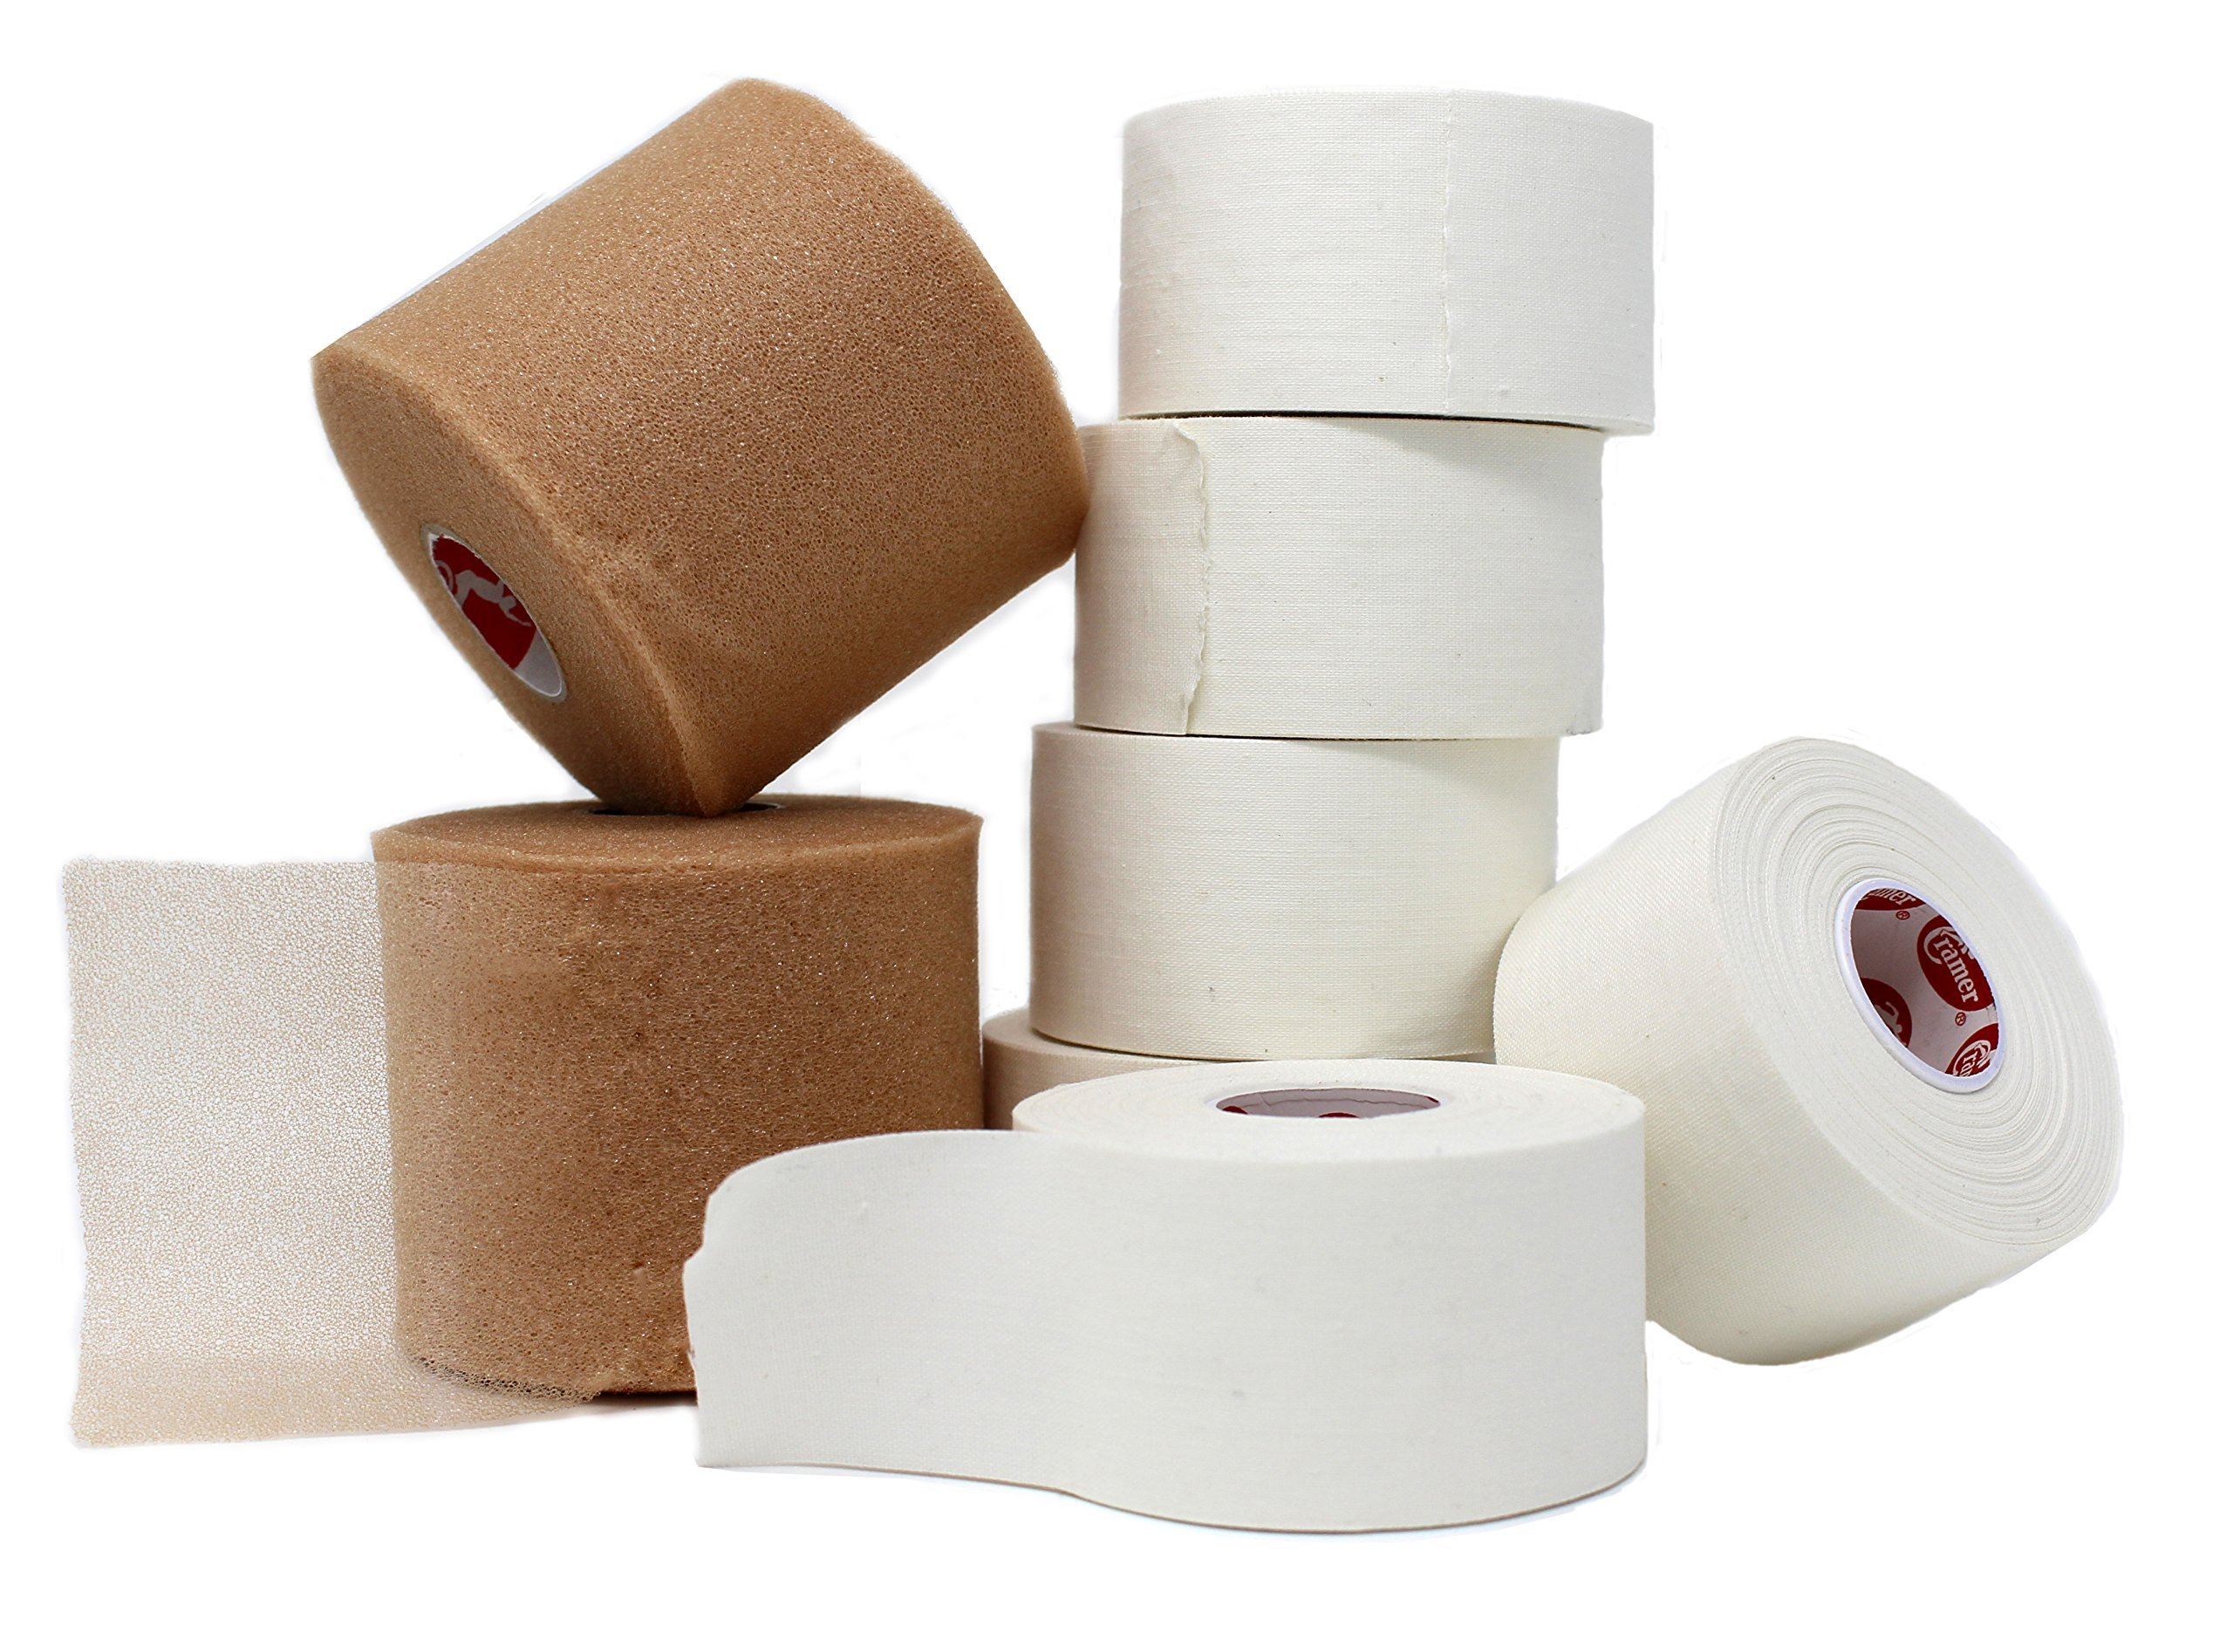 Athletic Tape and Pre Wrap Kit: – 6 Rolls of White Athletic Tape 1.5'' x 15 yds & 2 Rolls of Pre Wrap - high quality, very strong, no residue, easy tear - save money with this bundle